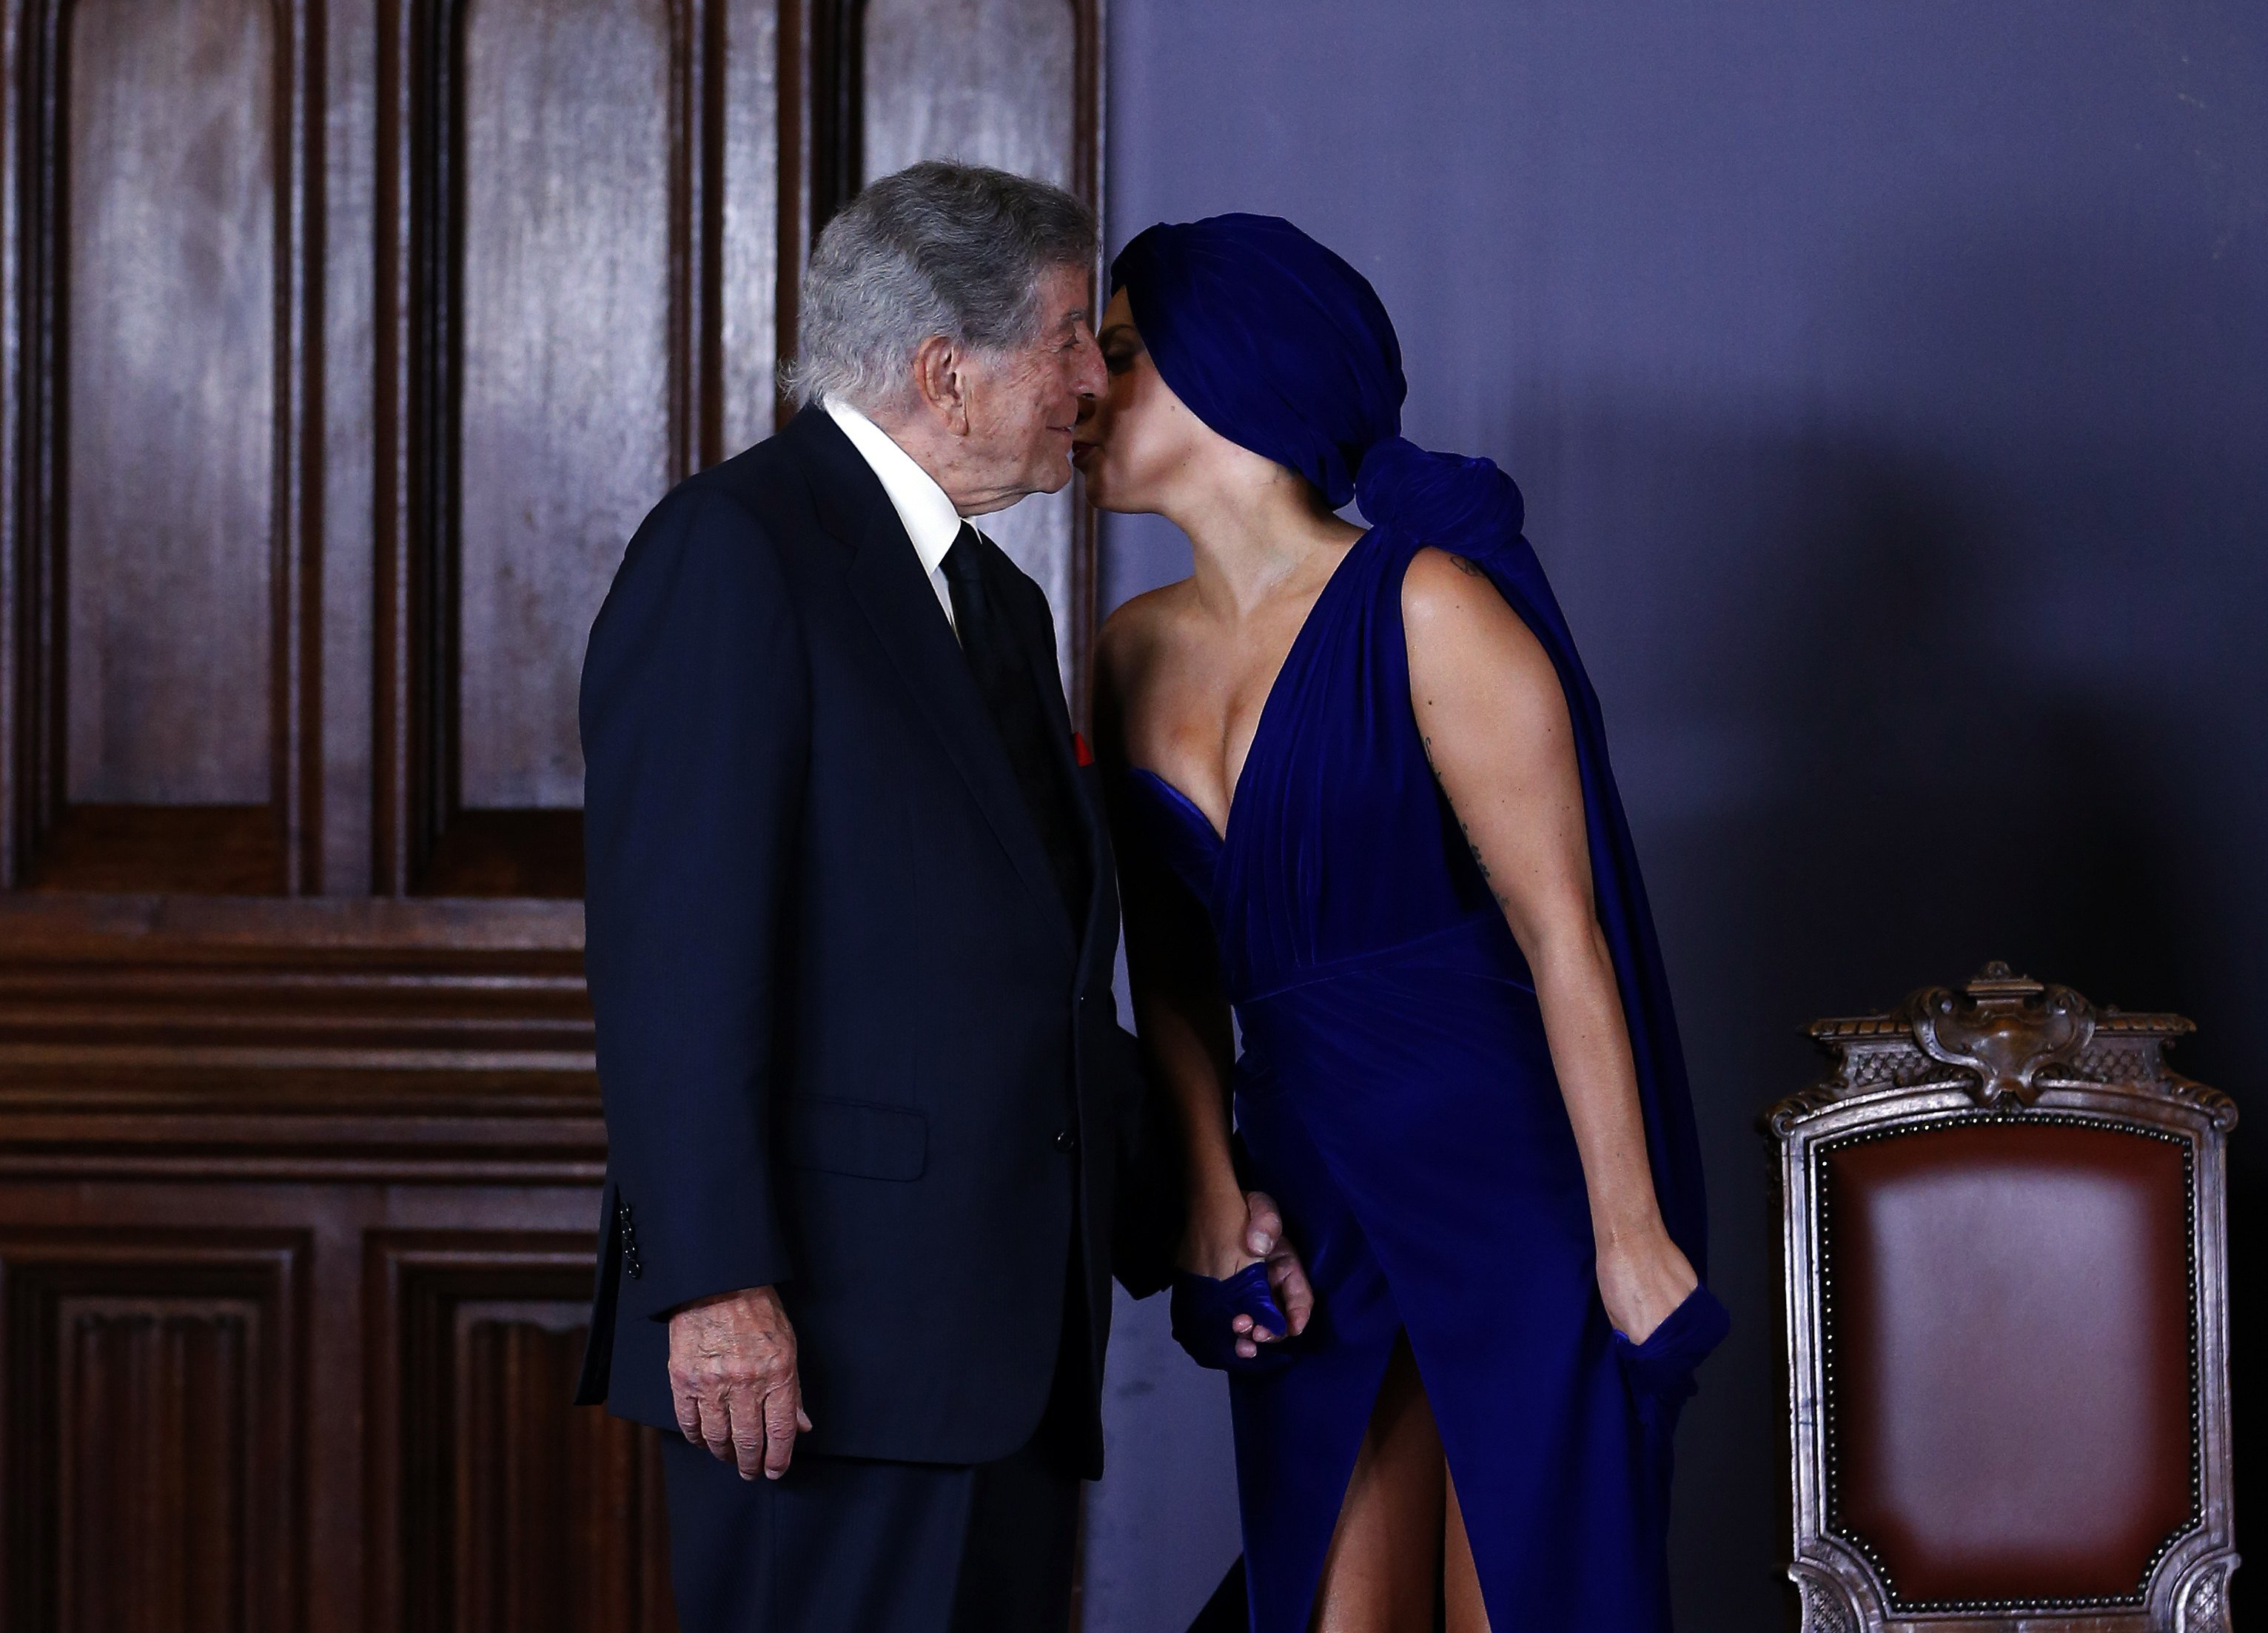 Singers Lady Gaga and Tony Bennett arrive at a news conference, ahead of their concert, in Brussels on Sept. 22, 2014.